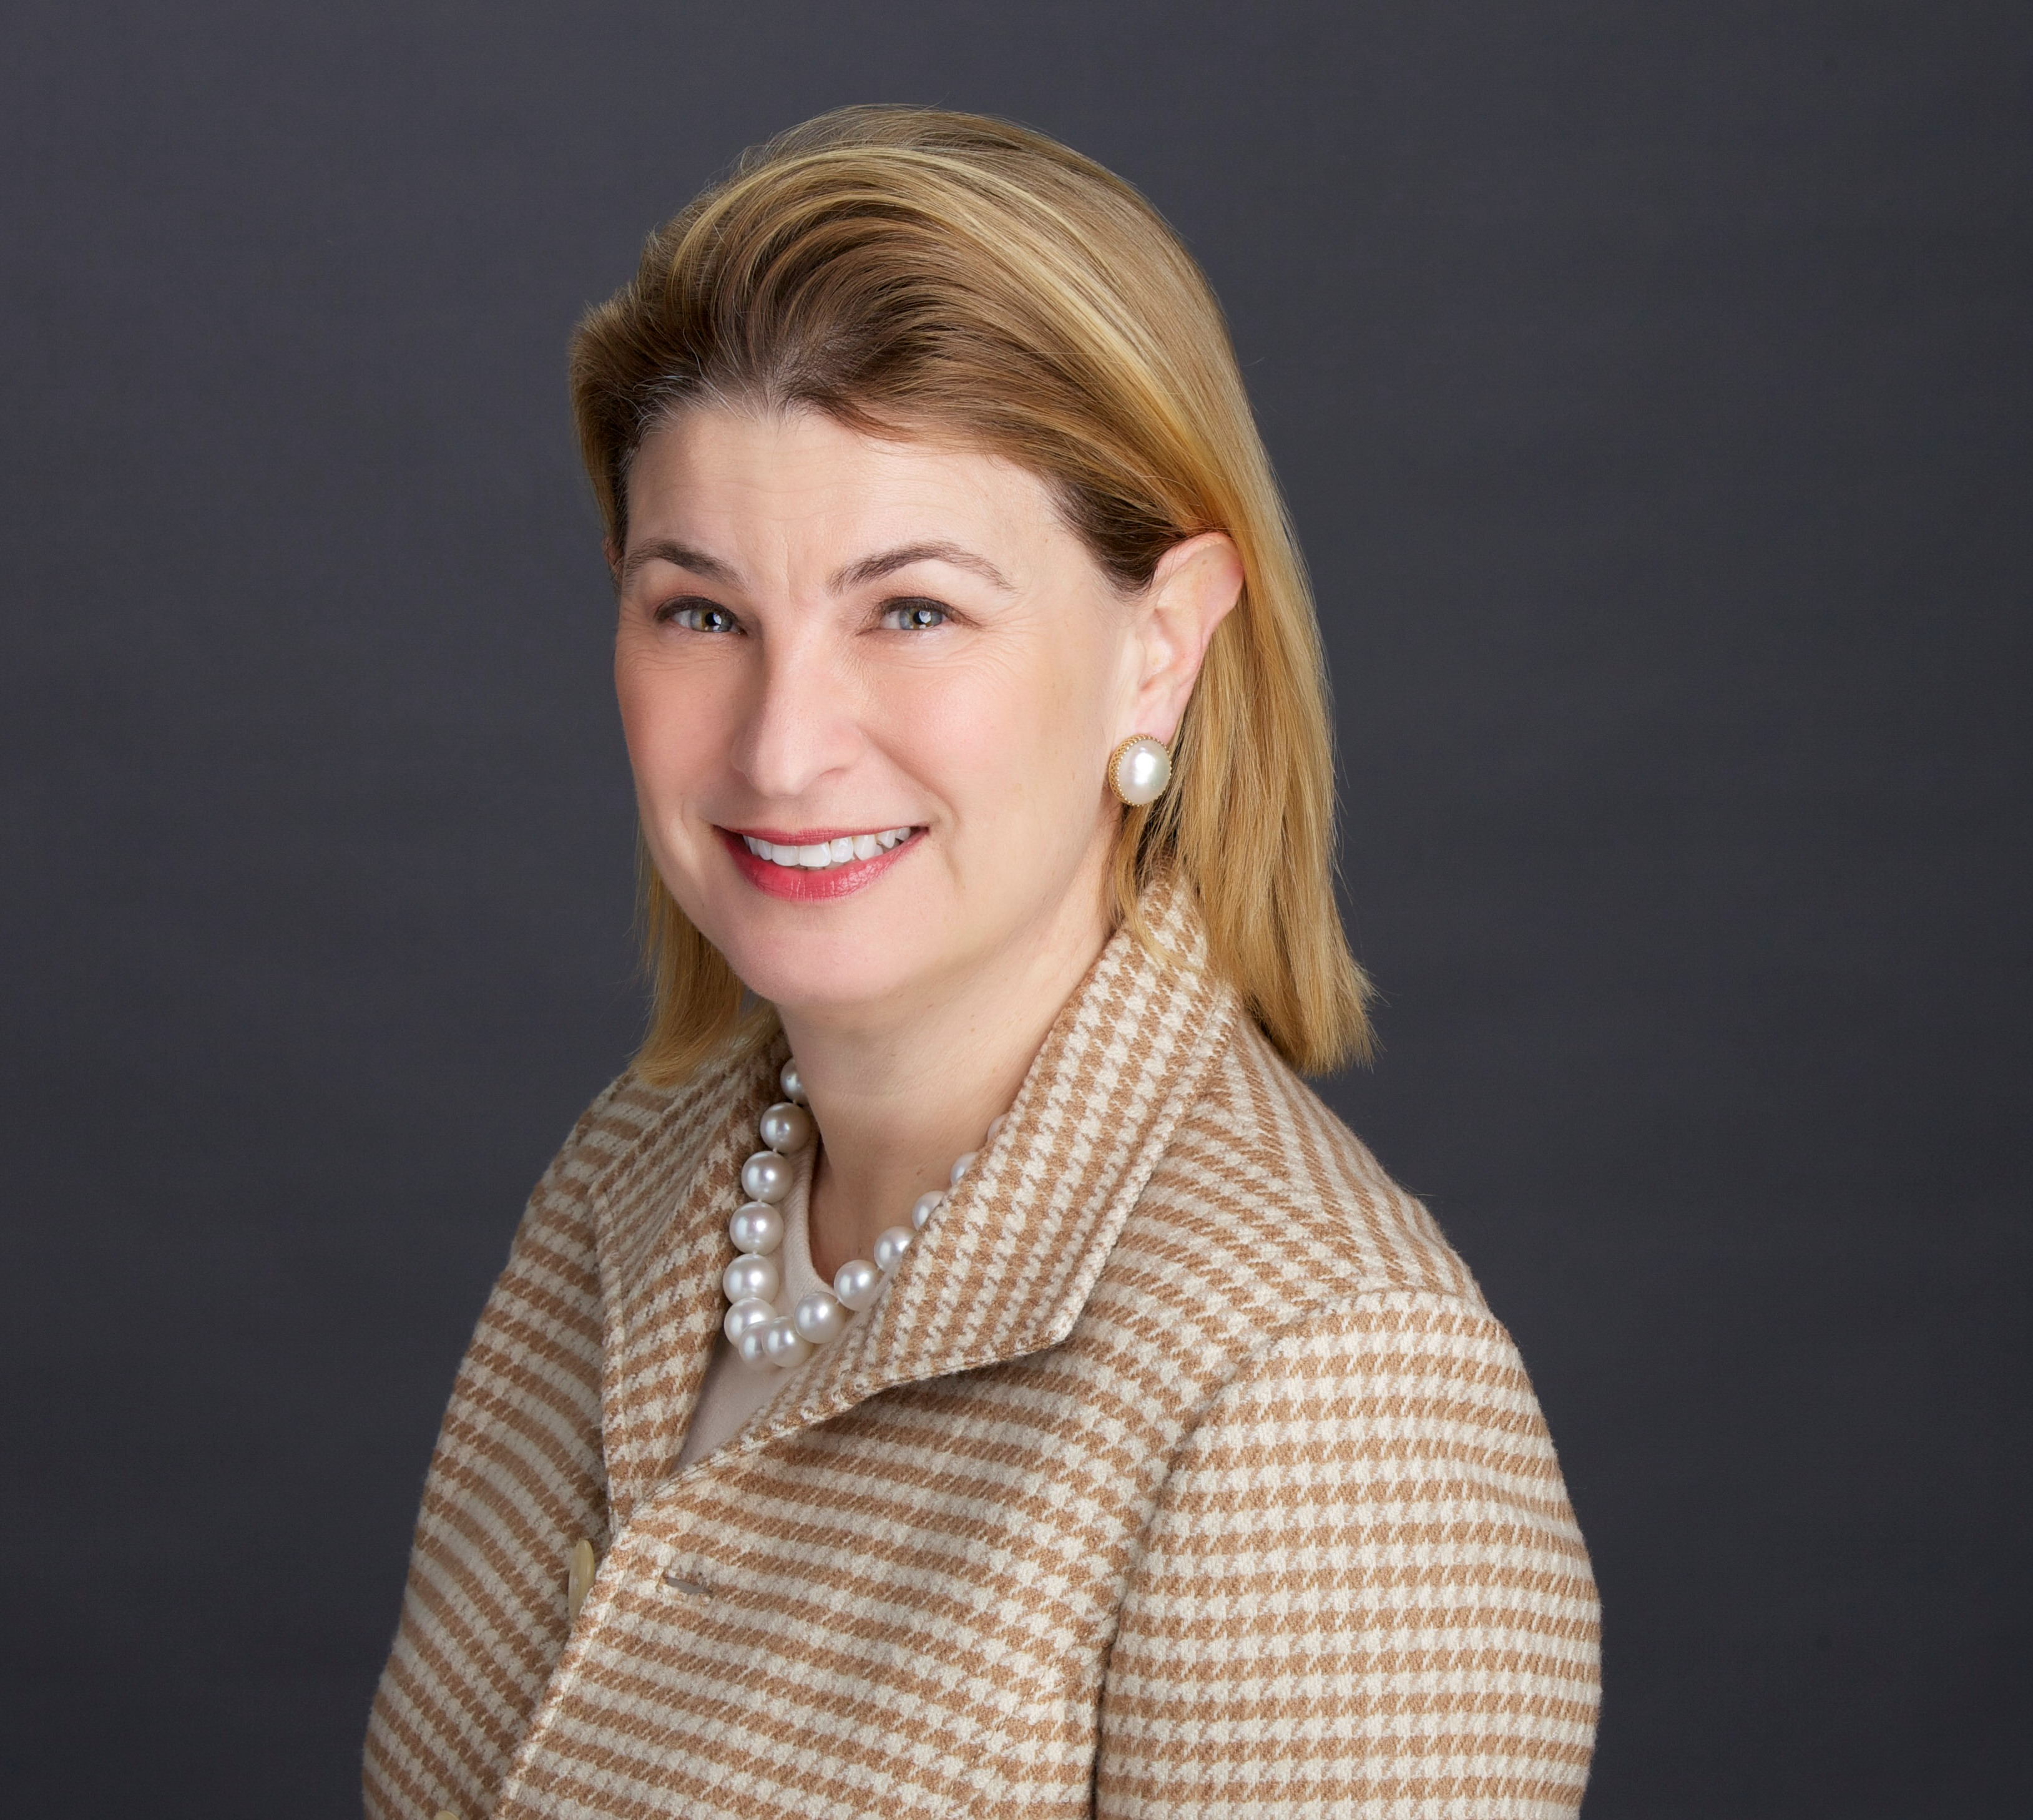 Sally Susman '84 was excited by her recent appointment to the Library of Congress board, saying that